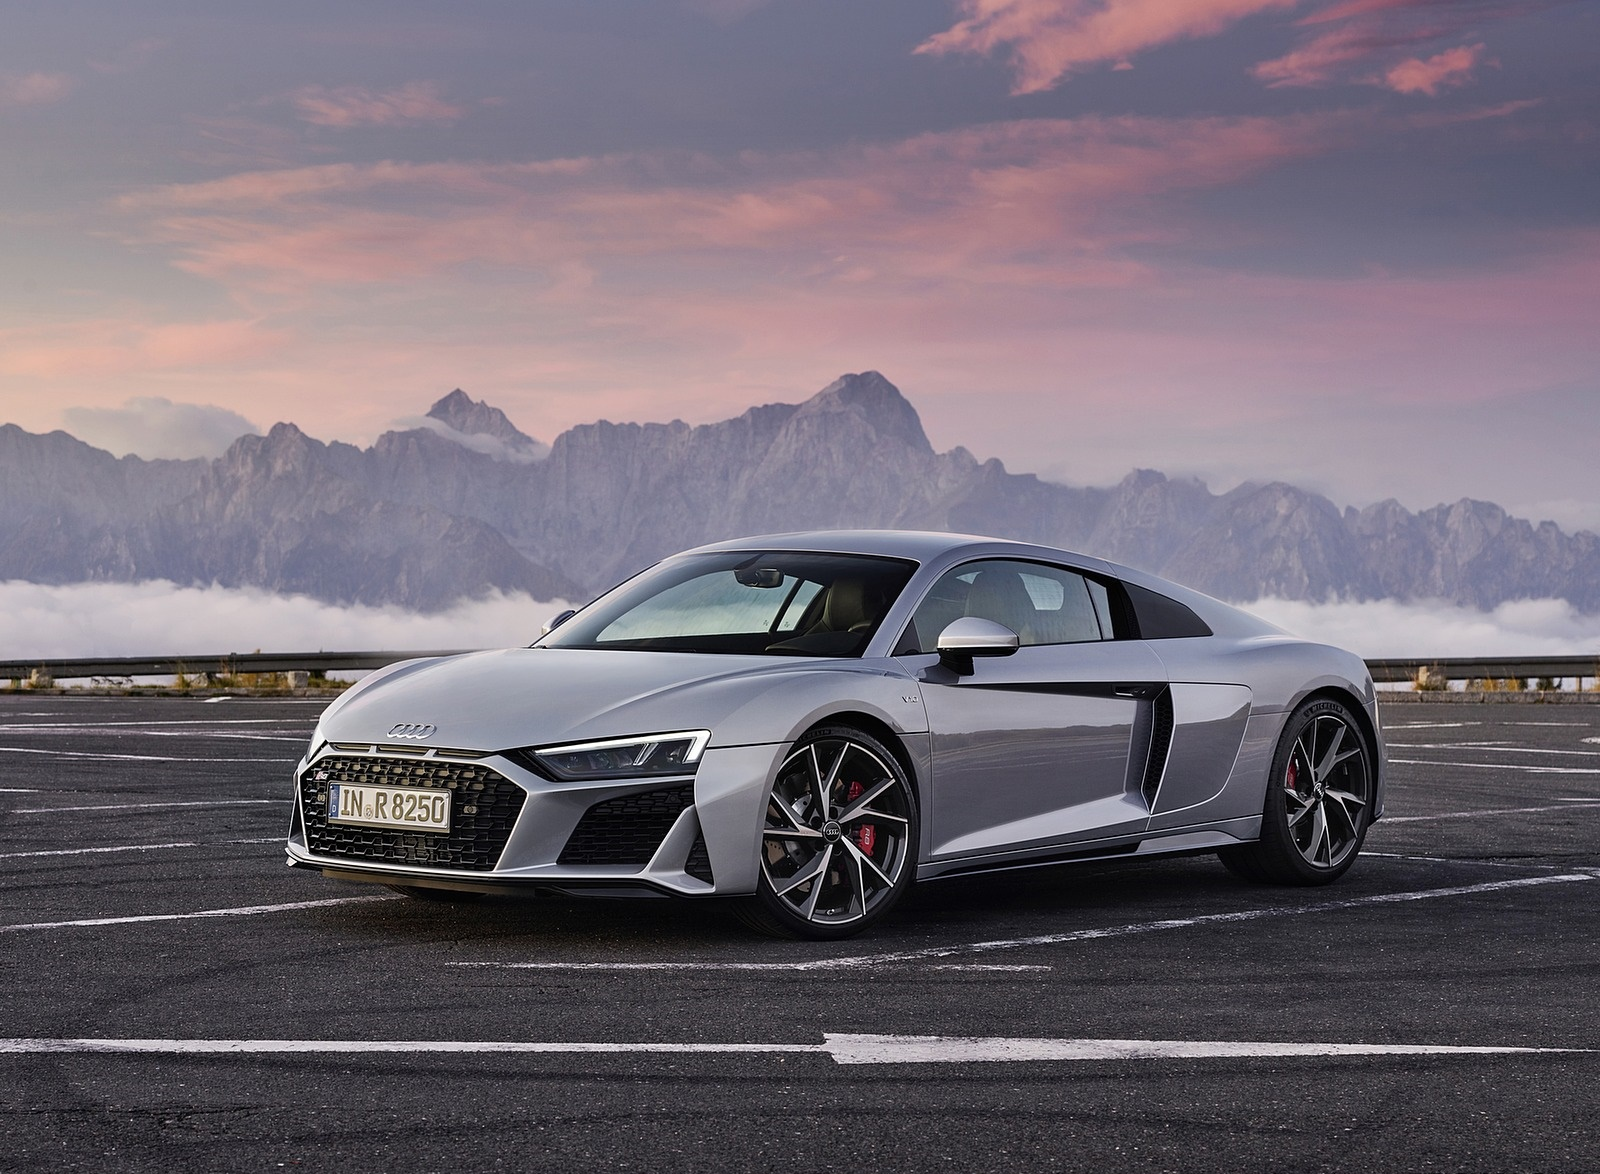 2020 Audi R8 V10 RWD Coupe (Color: Florett Silver) Front Three-Quarter Wallpapers #19 of 32